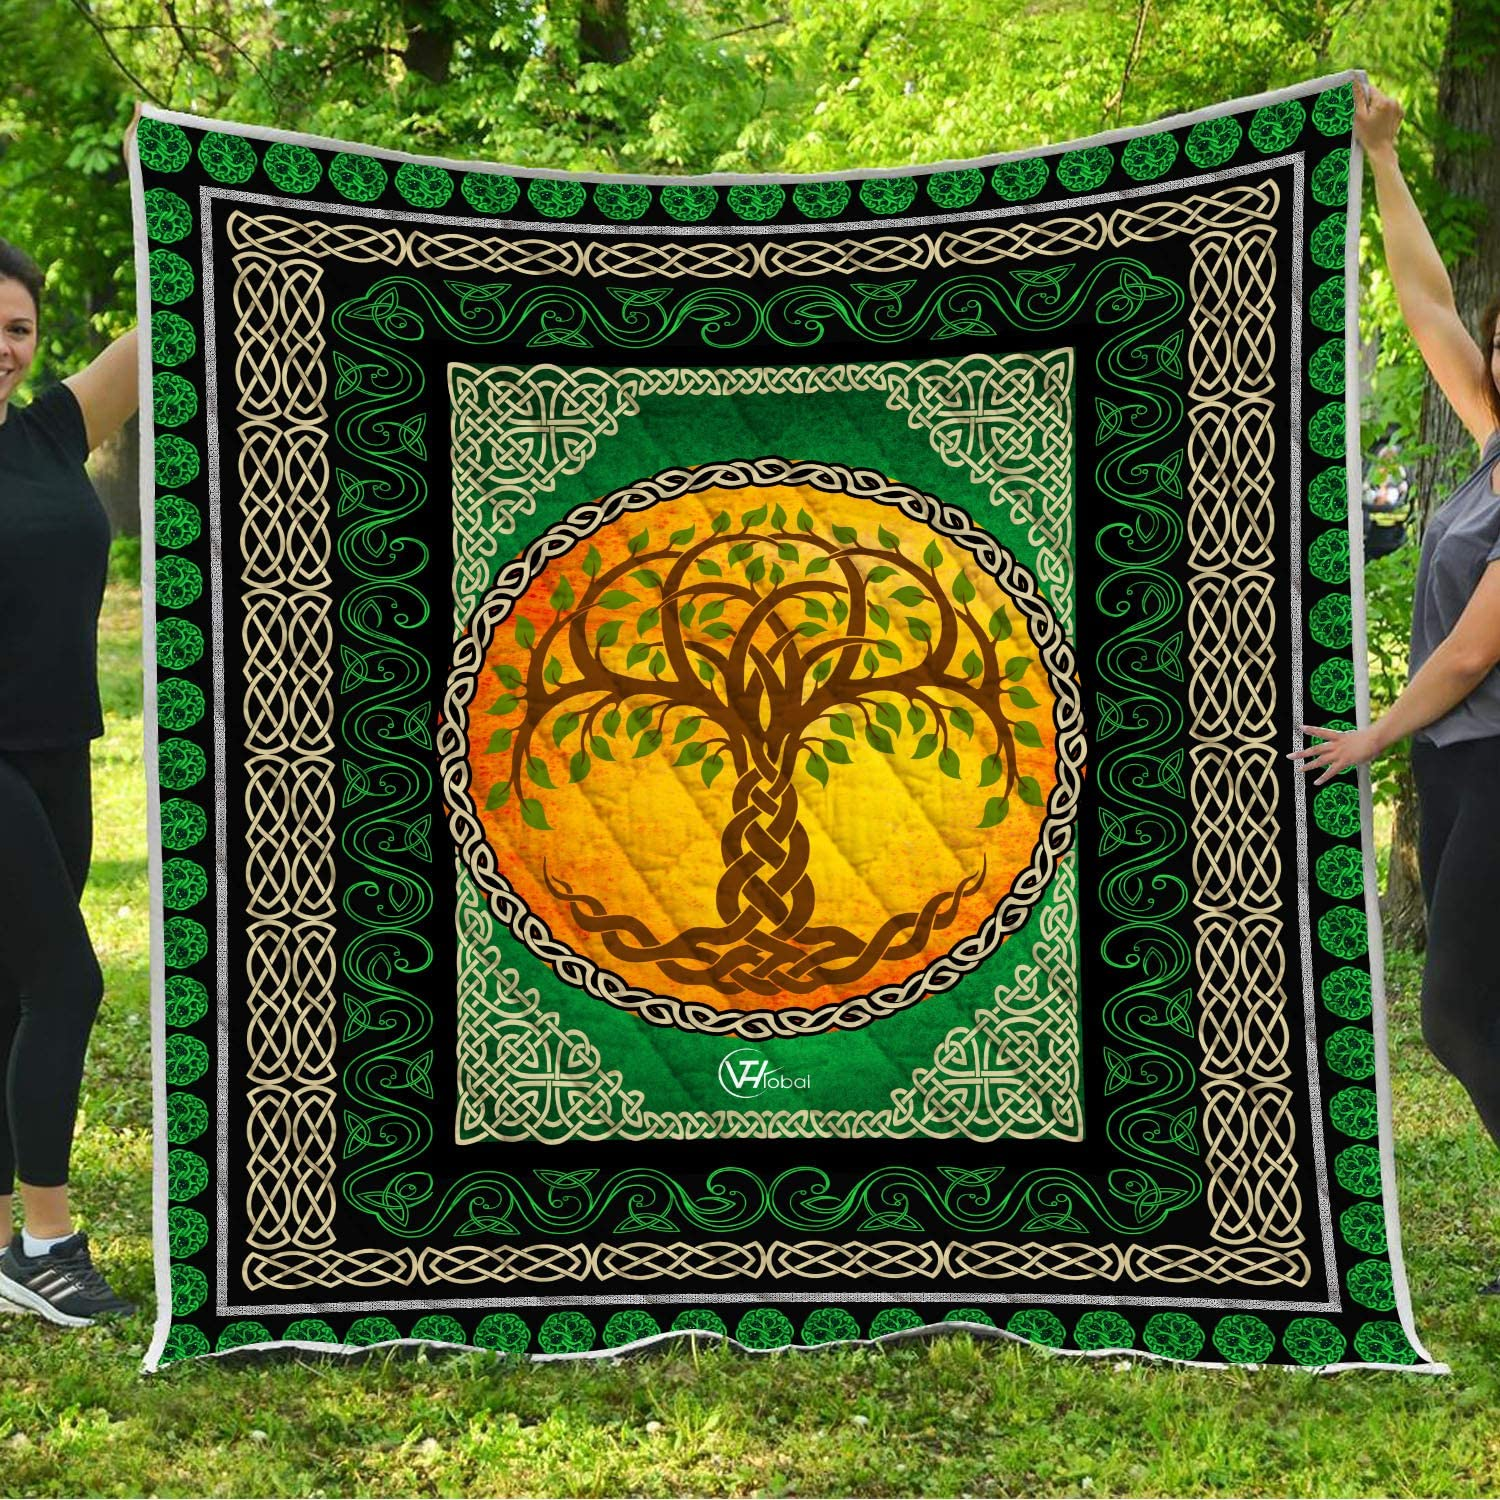 VTH Global Tree of Life Quilt Pattern Blanket Comforters with Reversible Cotton King Queen Full Twin Size Irish Celtic Trinity Knot Quilted Birthday Gifts for Men Women Dad Mom Boys Girls